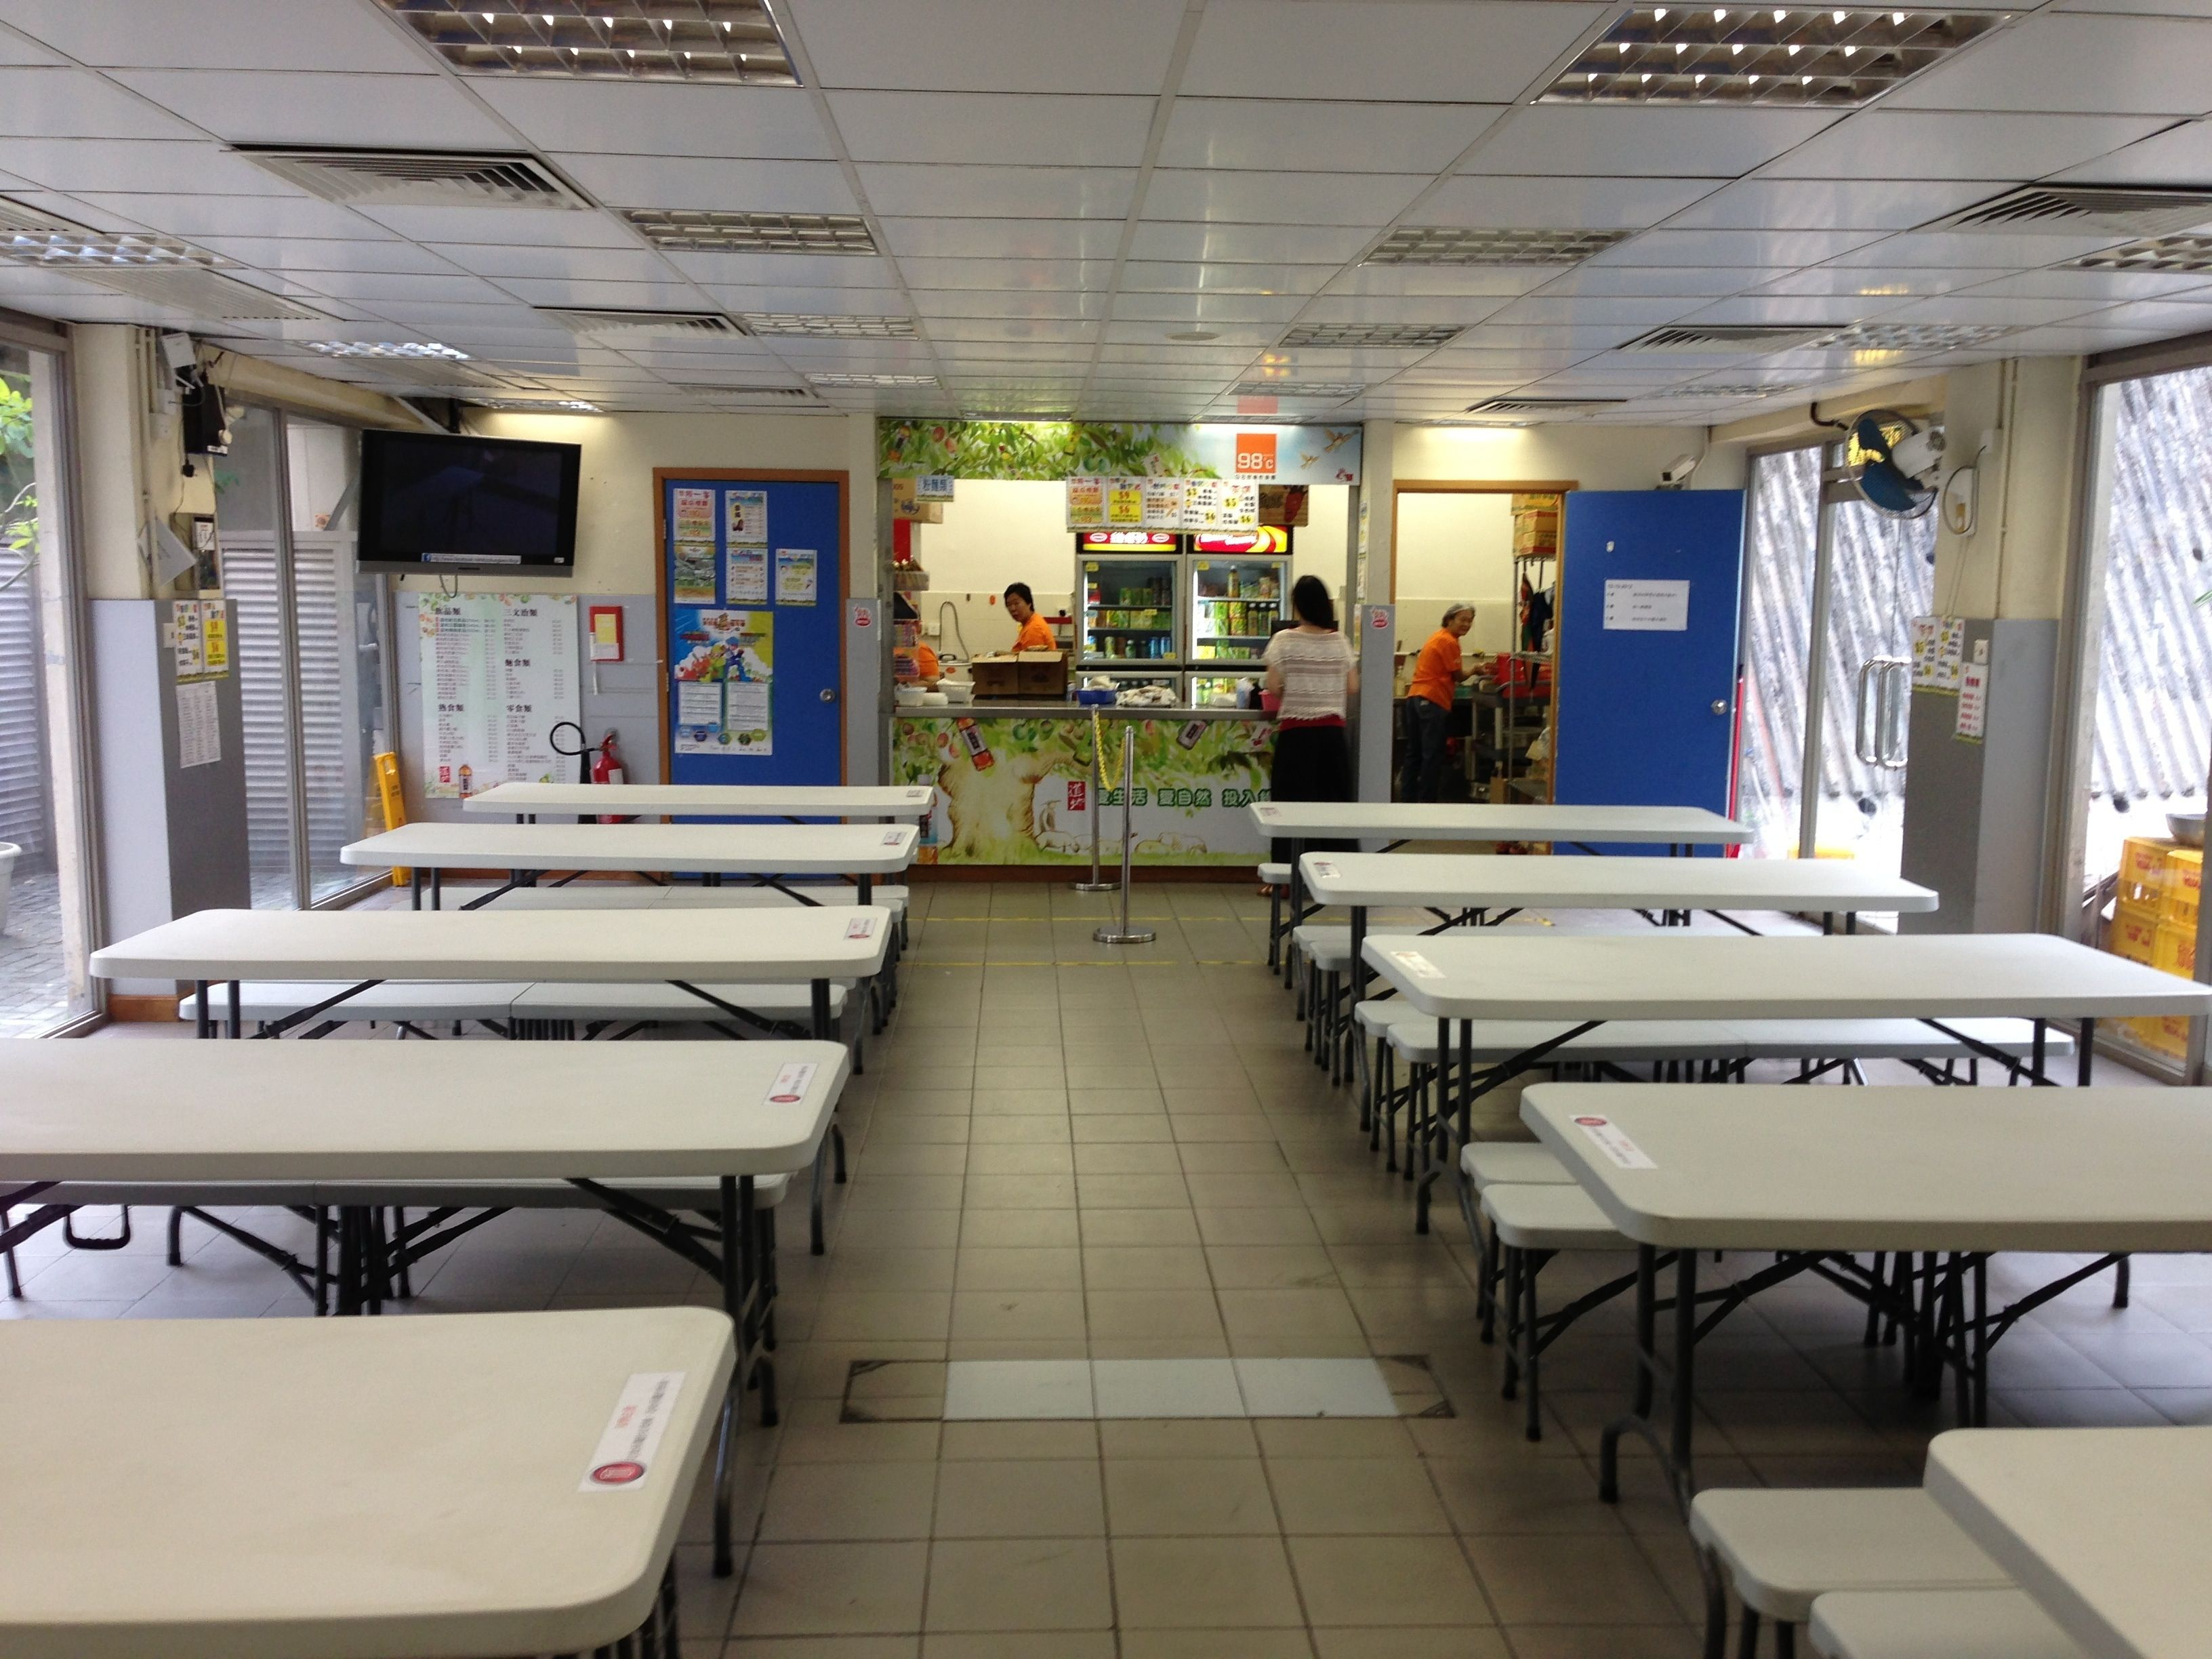 School Canteen Interior Design With Long Table School Design Interior School Design